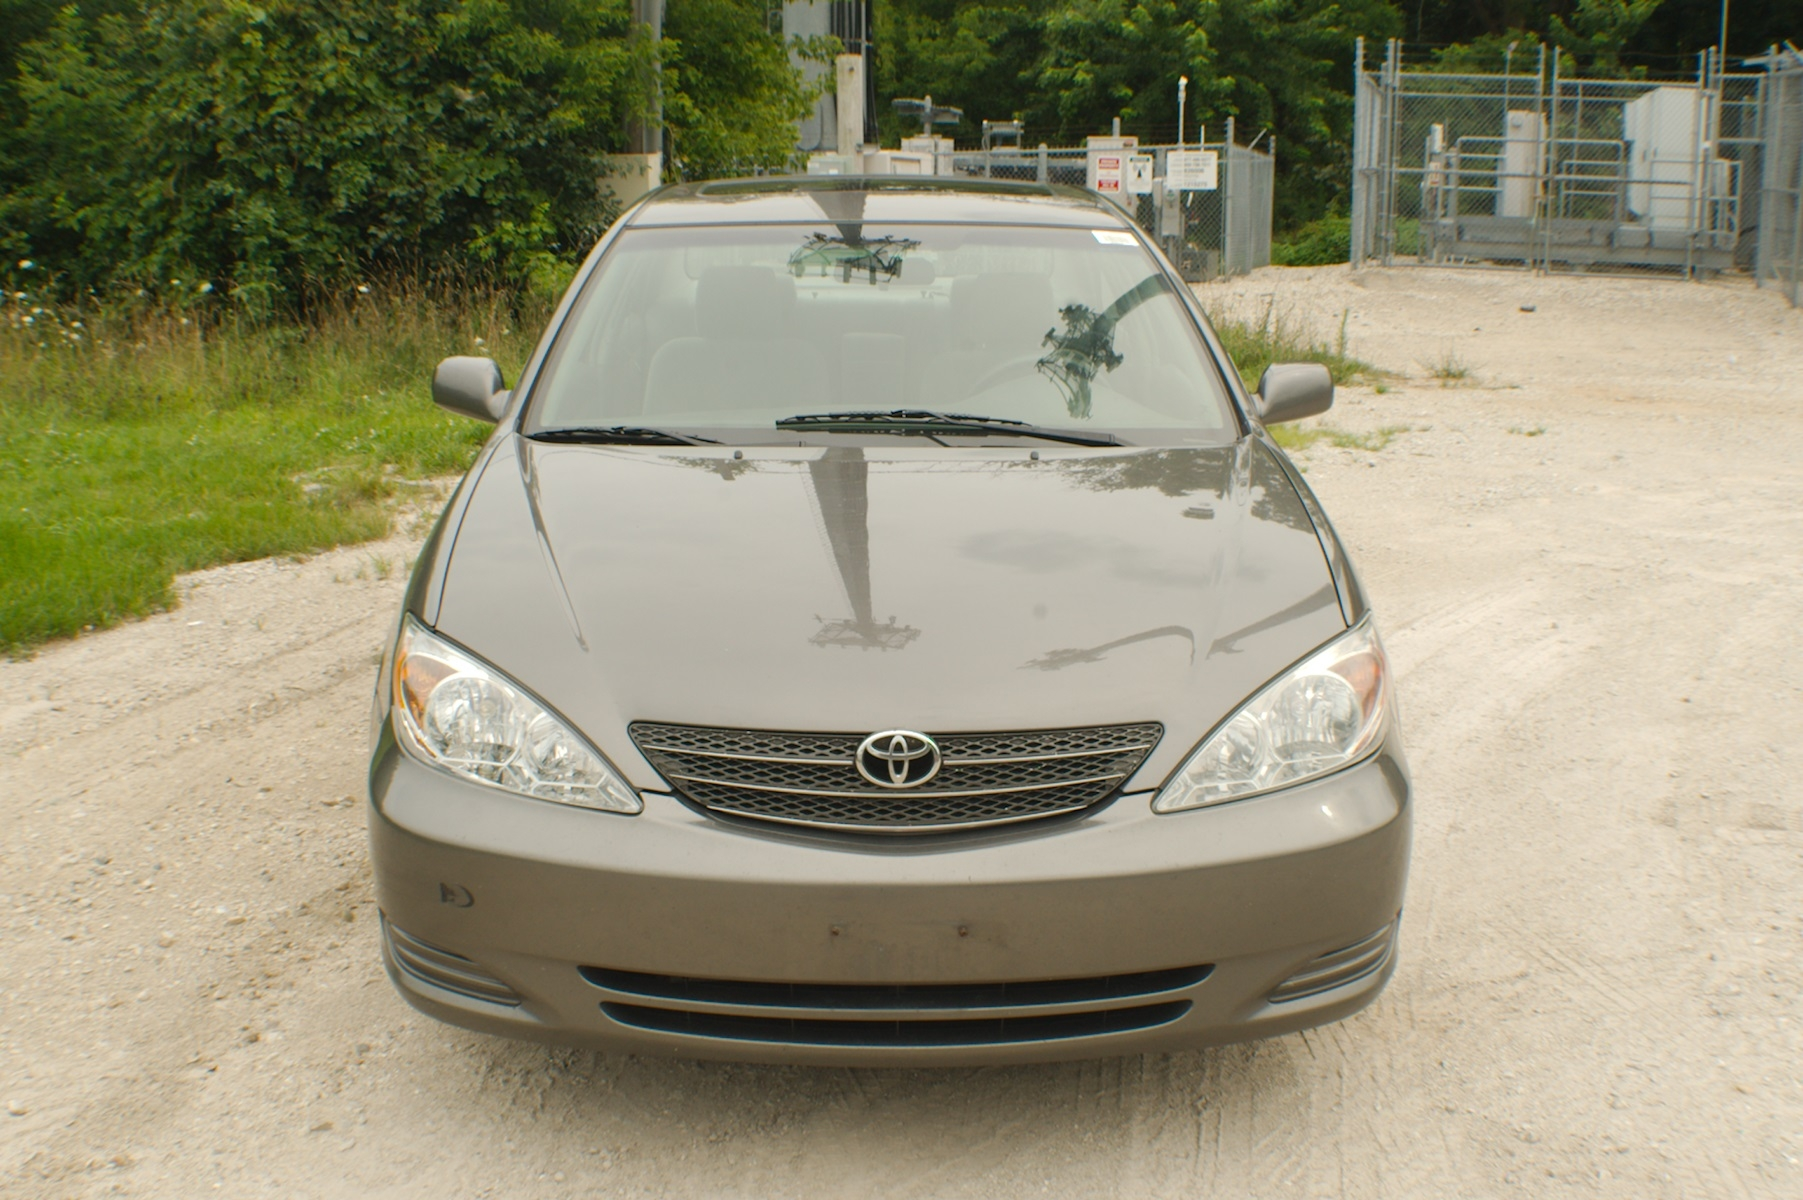 2004 Toyota Camry Sand Sedan Used Car Sale Gurnee Kenosha Mchenry Chicago Illinois